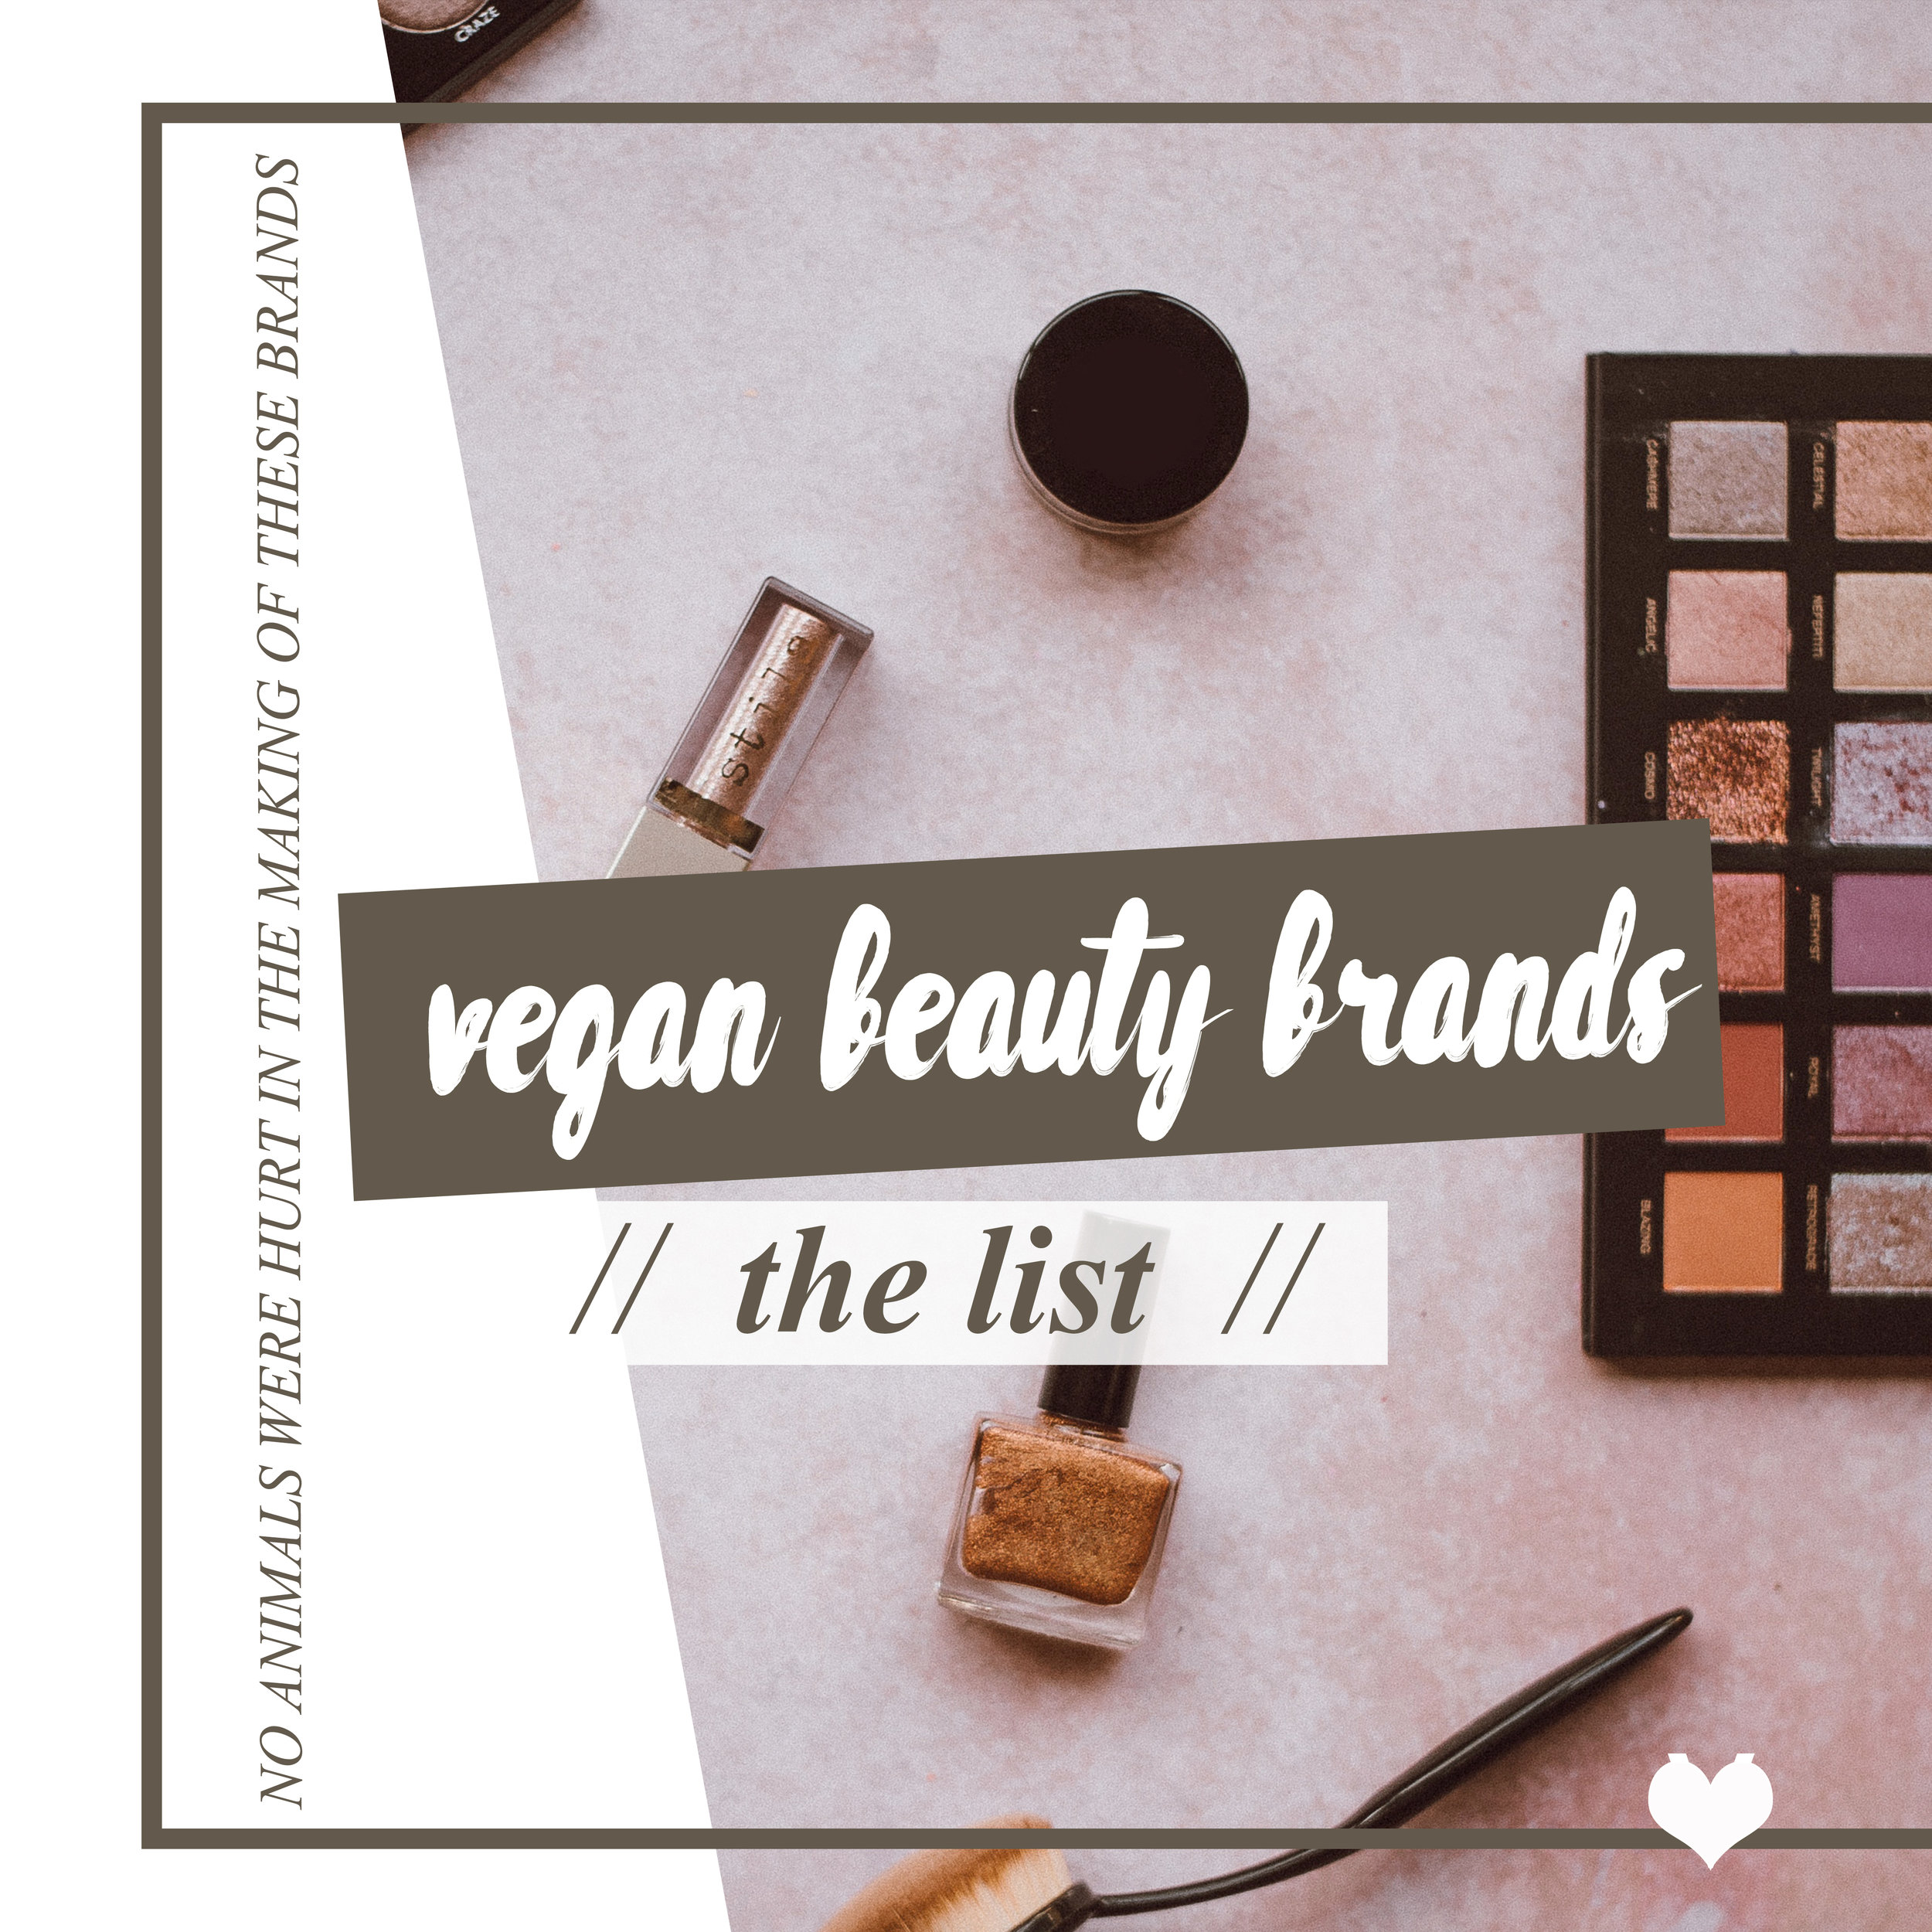 VEGAN BEAUTY brands 2 .jpg